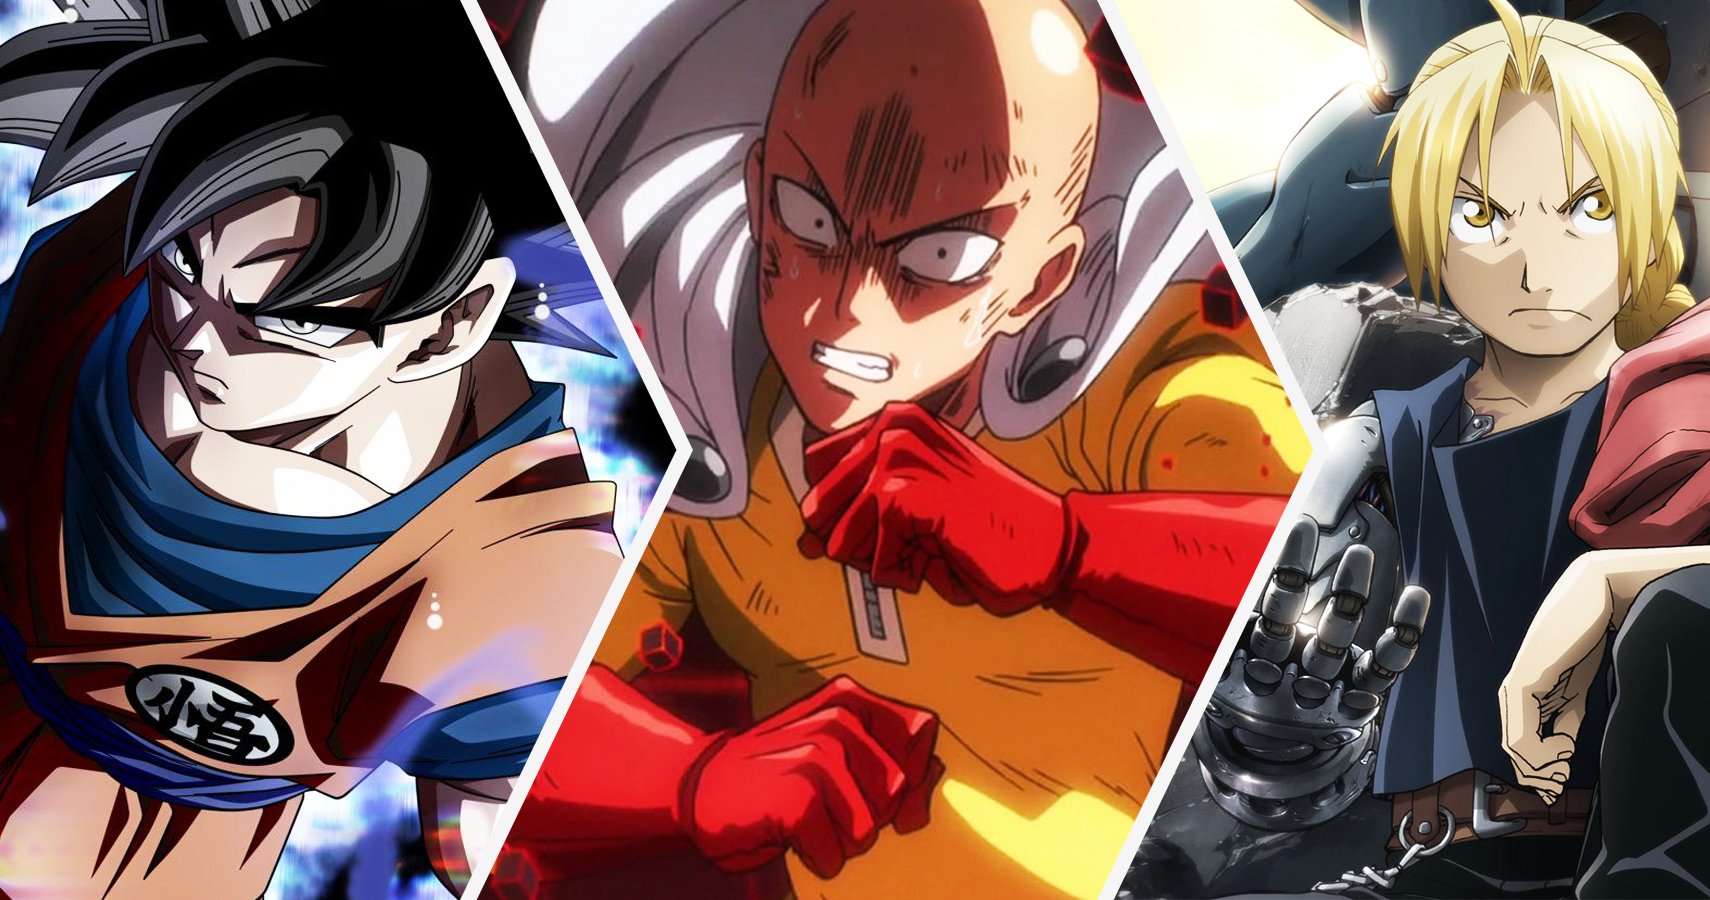 Top 25 Most Powerful Anime Characters Of All-Time, Ranked